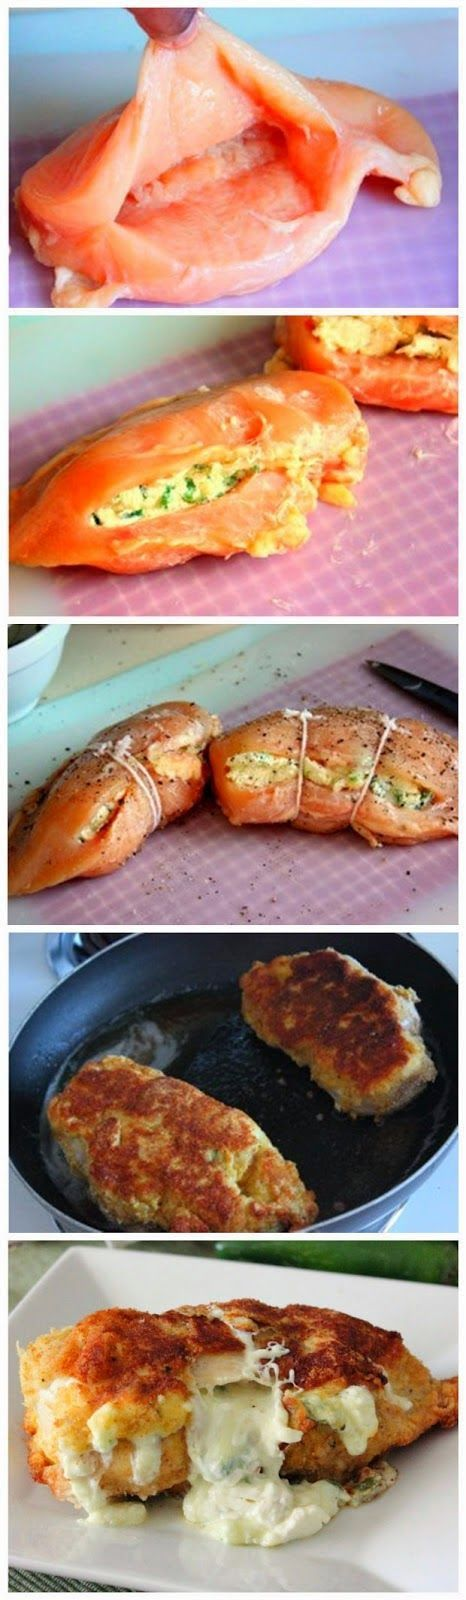 10 Yummy Chicken Recipes | Young Craze